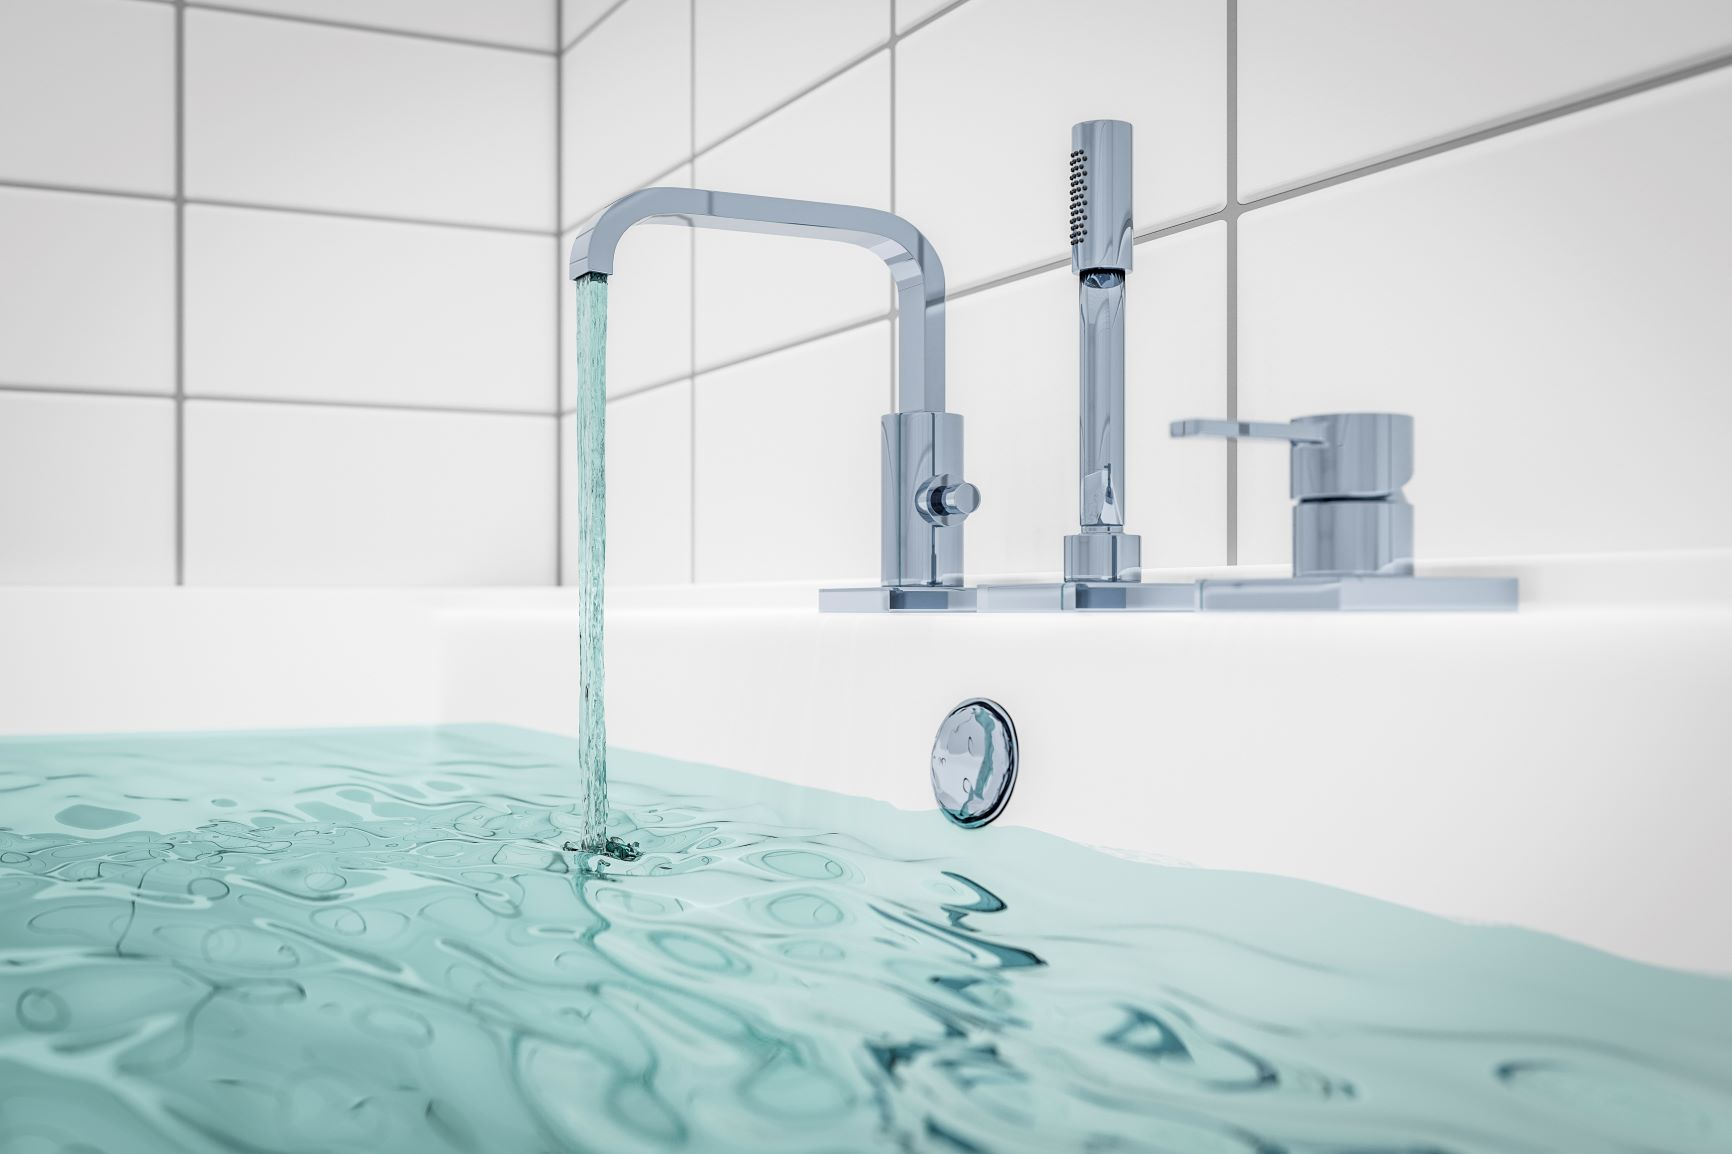 SEPTIC SYSTEM MAINTENANCE – TAKE CARE OF YOUR SYSTEM BEFORE THERE IS A PROBLEM